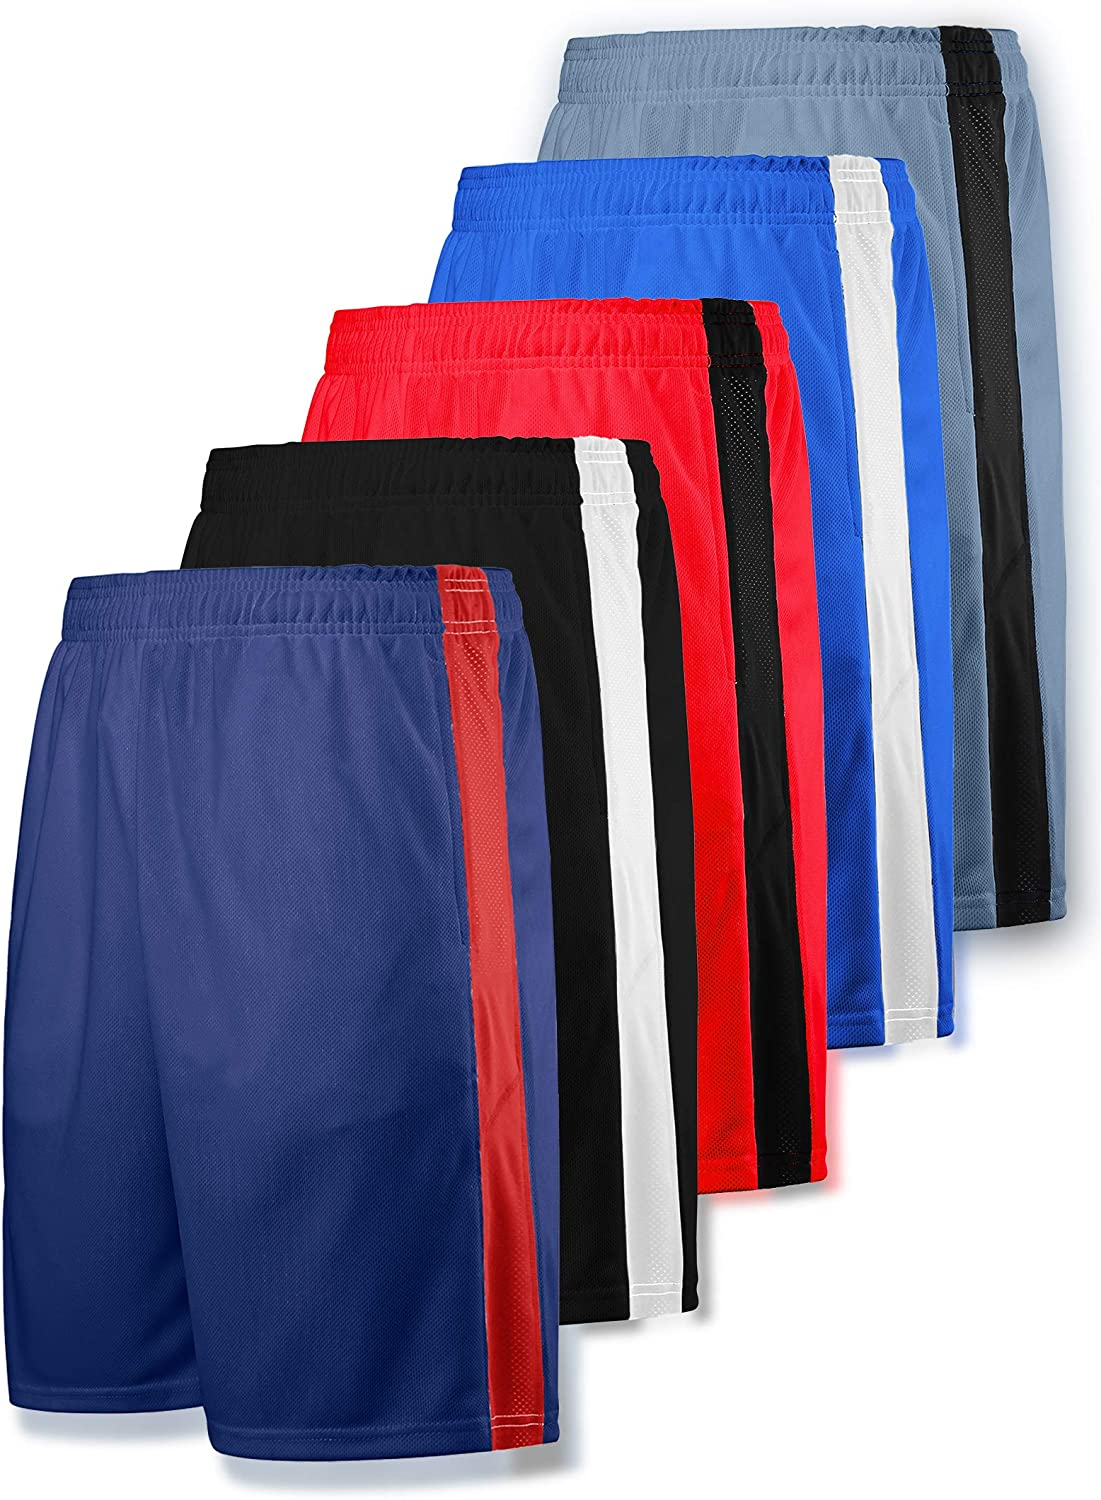 Liberty Imports Pack of 5 Mens Athletic Basketball Shorts Mesh Quick Dry Activewear with Pocket